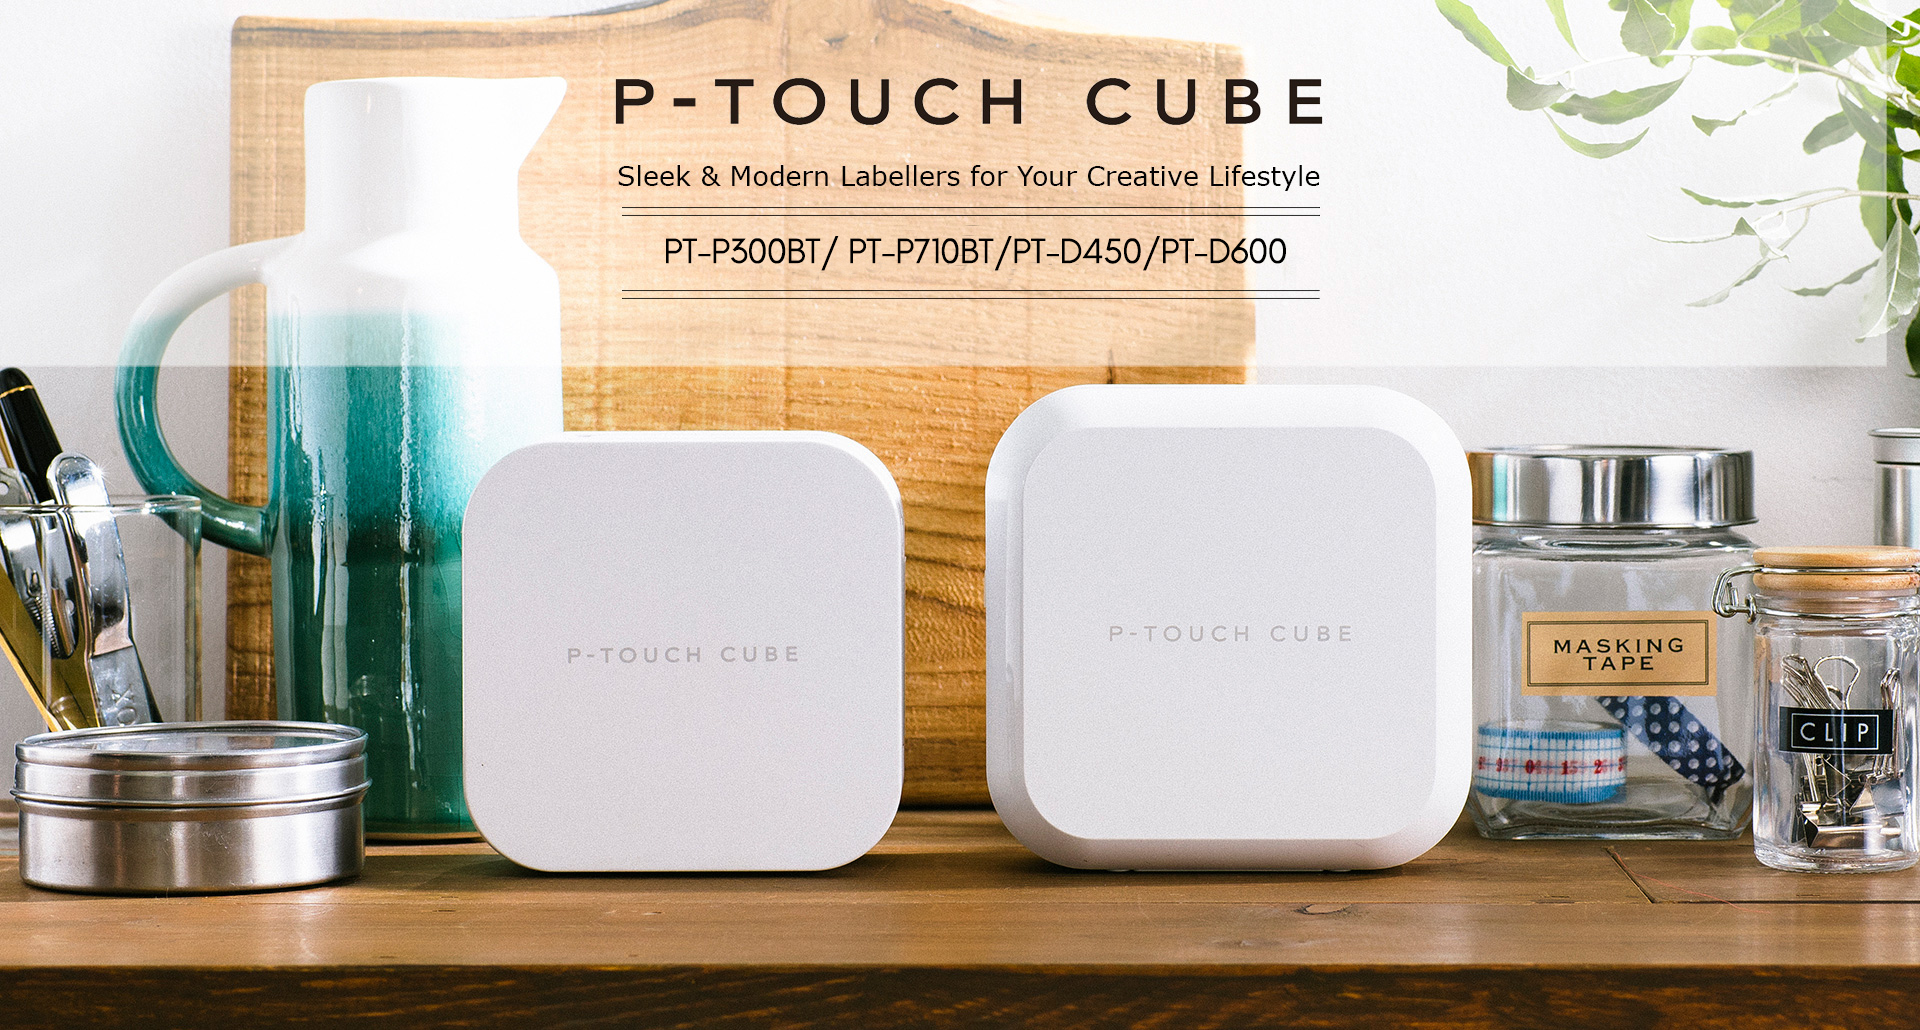 P-TOUCH CUBE Sleek & Modern labellers for your creative lifestyle